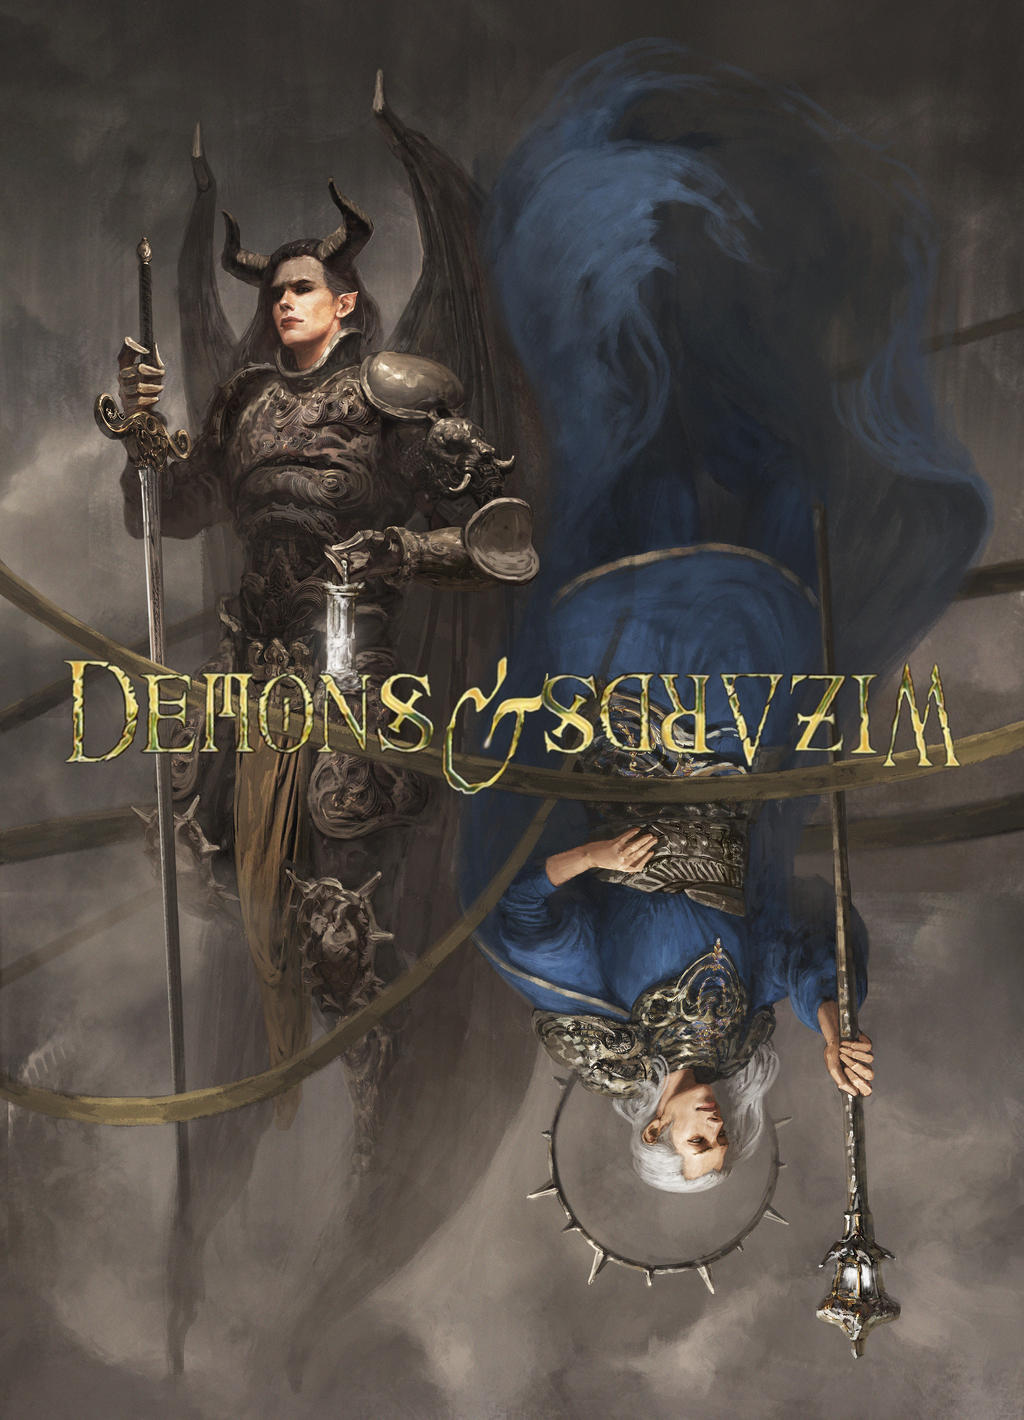 Demons and Wizards